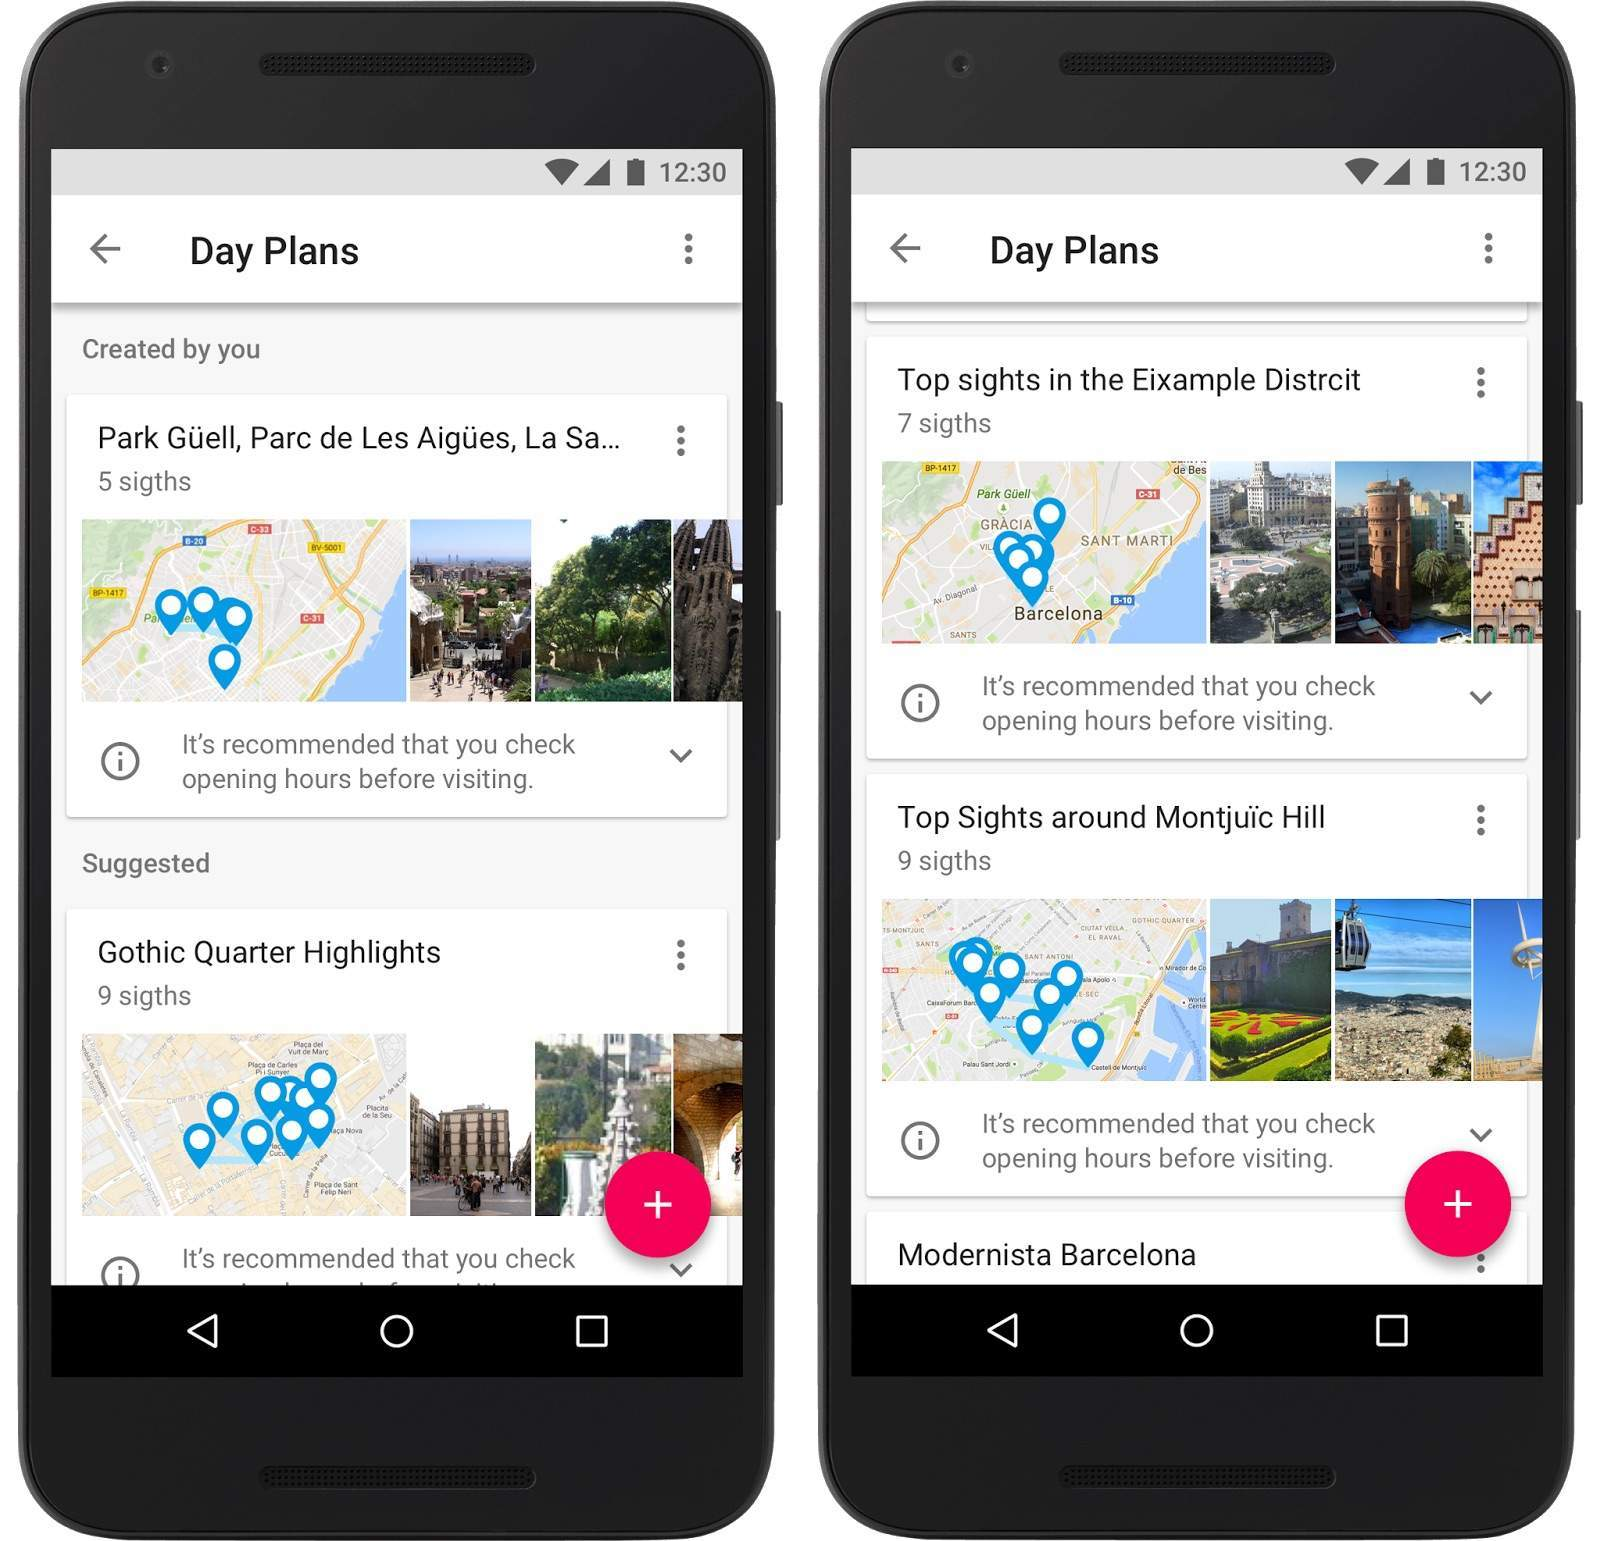 Google Trips puts travel guide for 200 cities in your pocket.